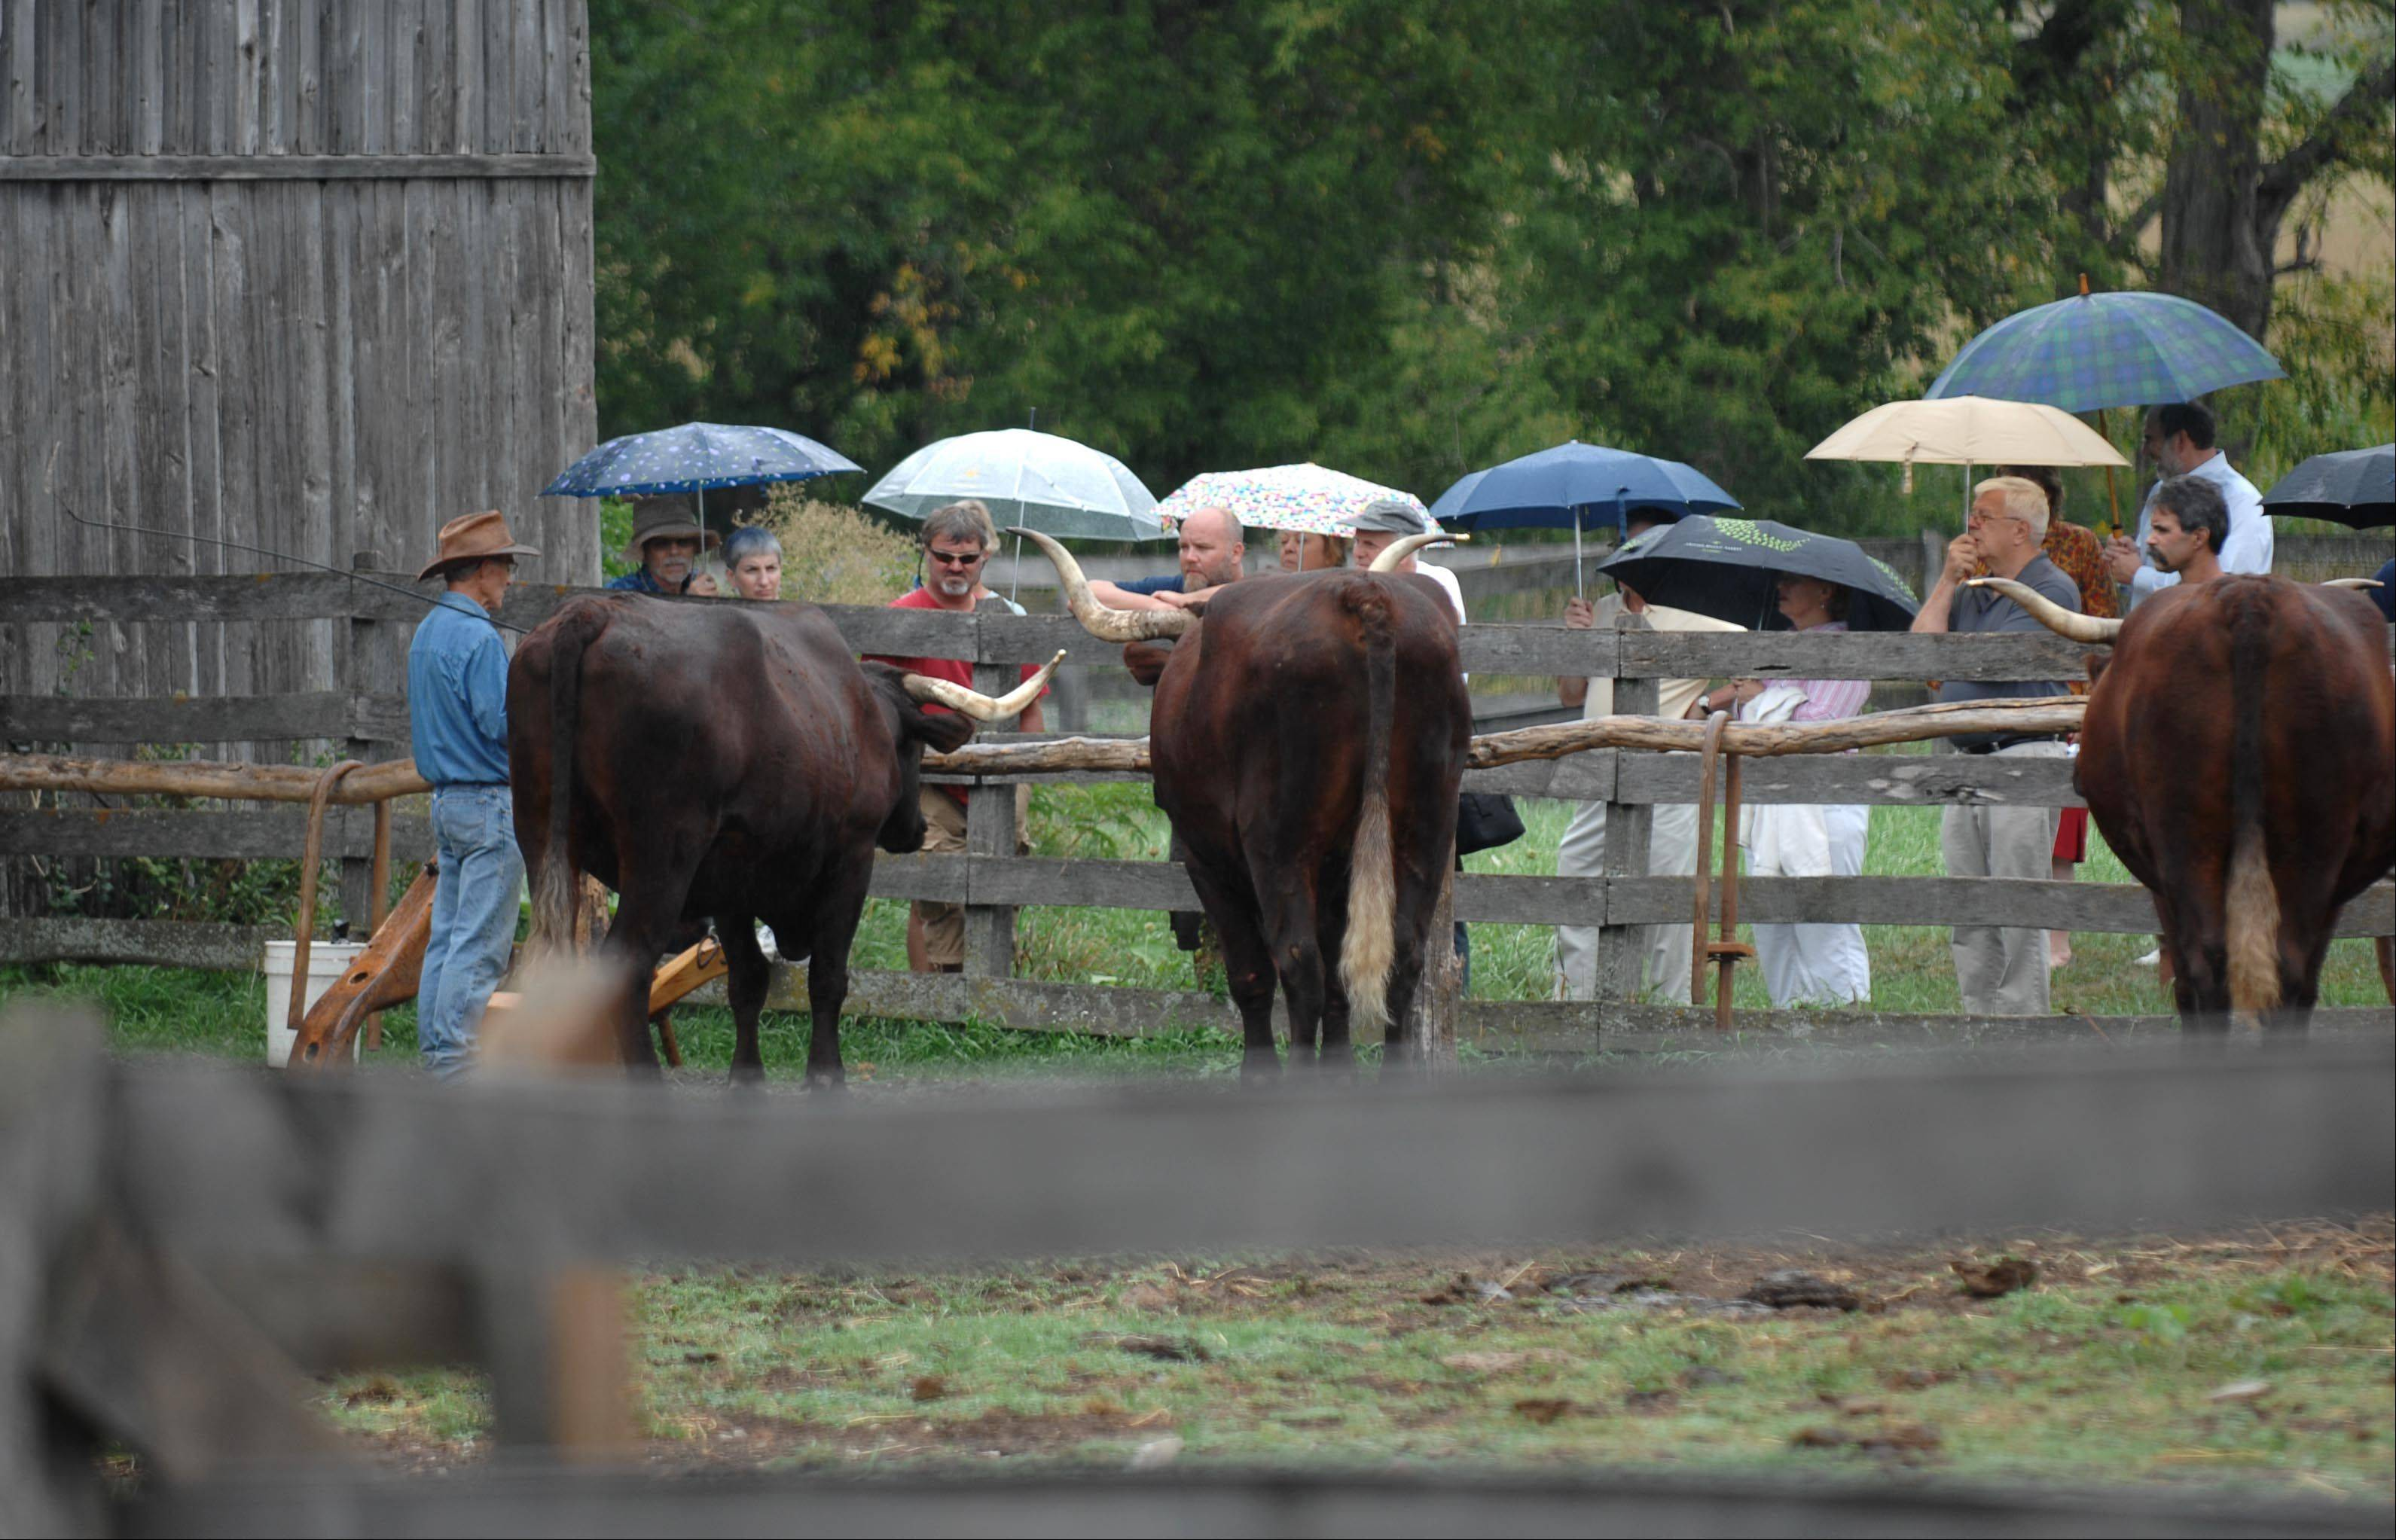 Chuck Bauer shows visitors an oxen demonstration at the 2012 Heirloom Garden Show at Garfield Farm Museum. This year's event will be Sunday, Aug. 25.